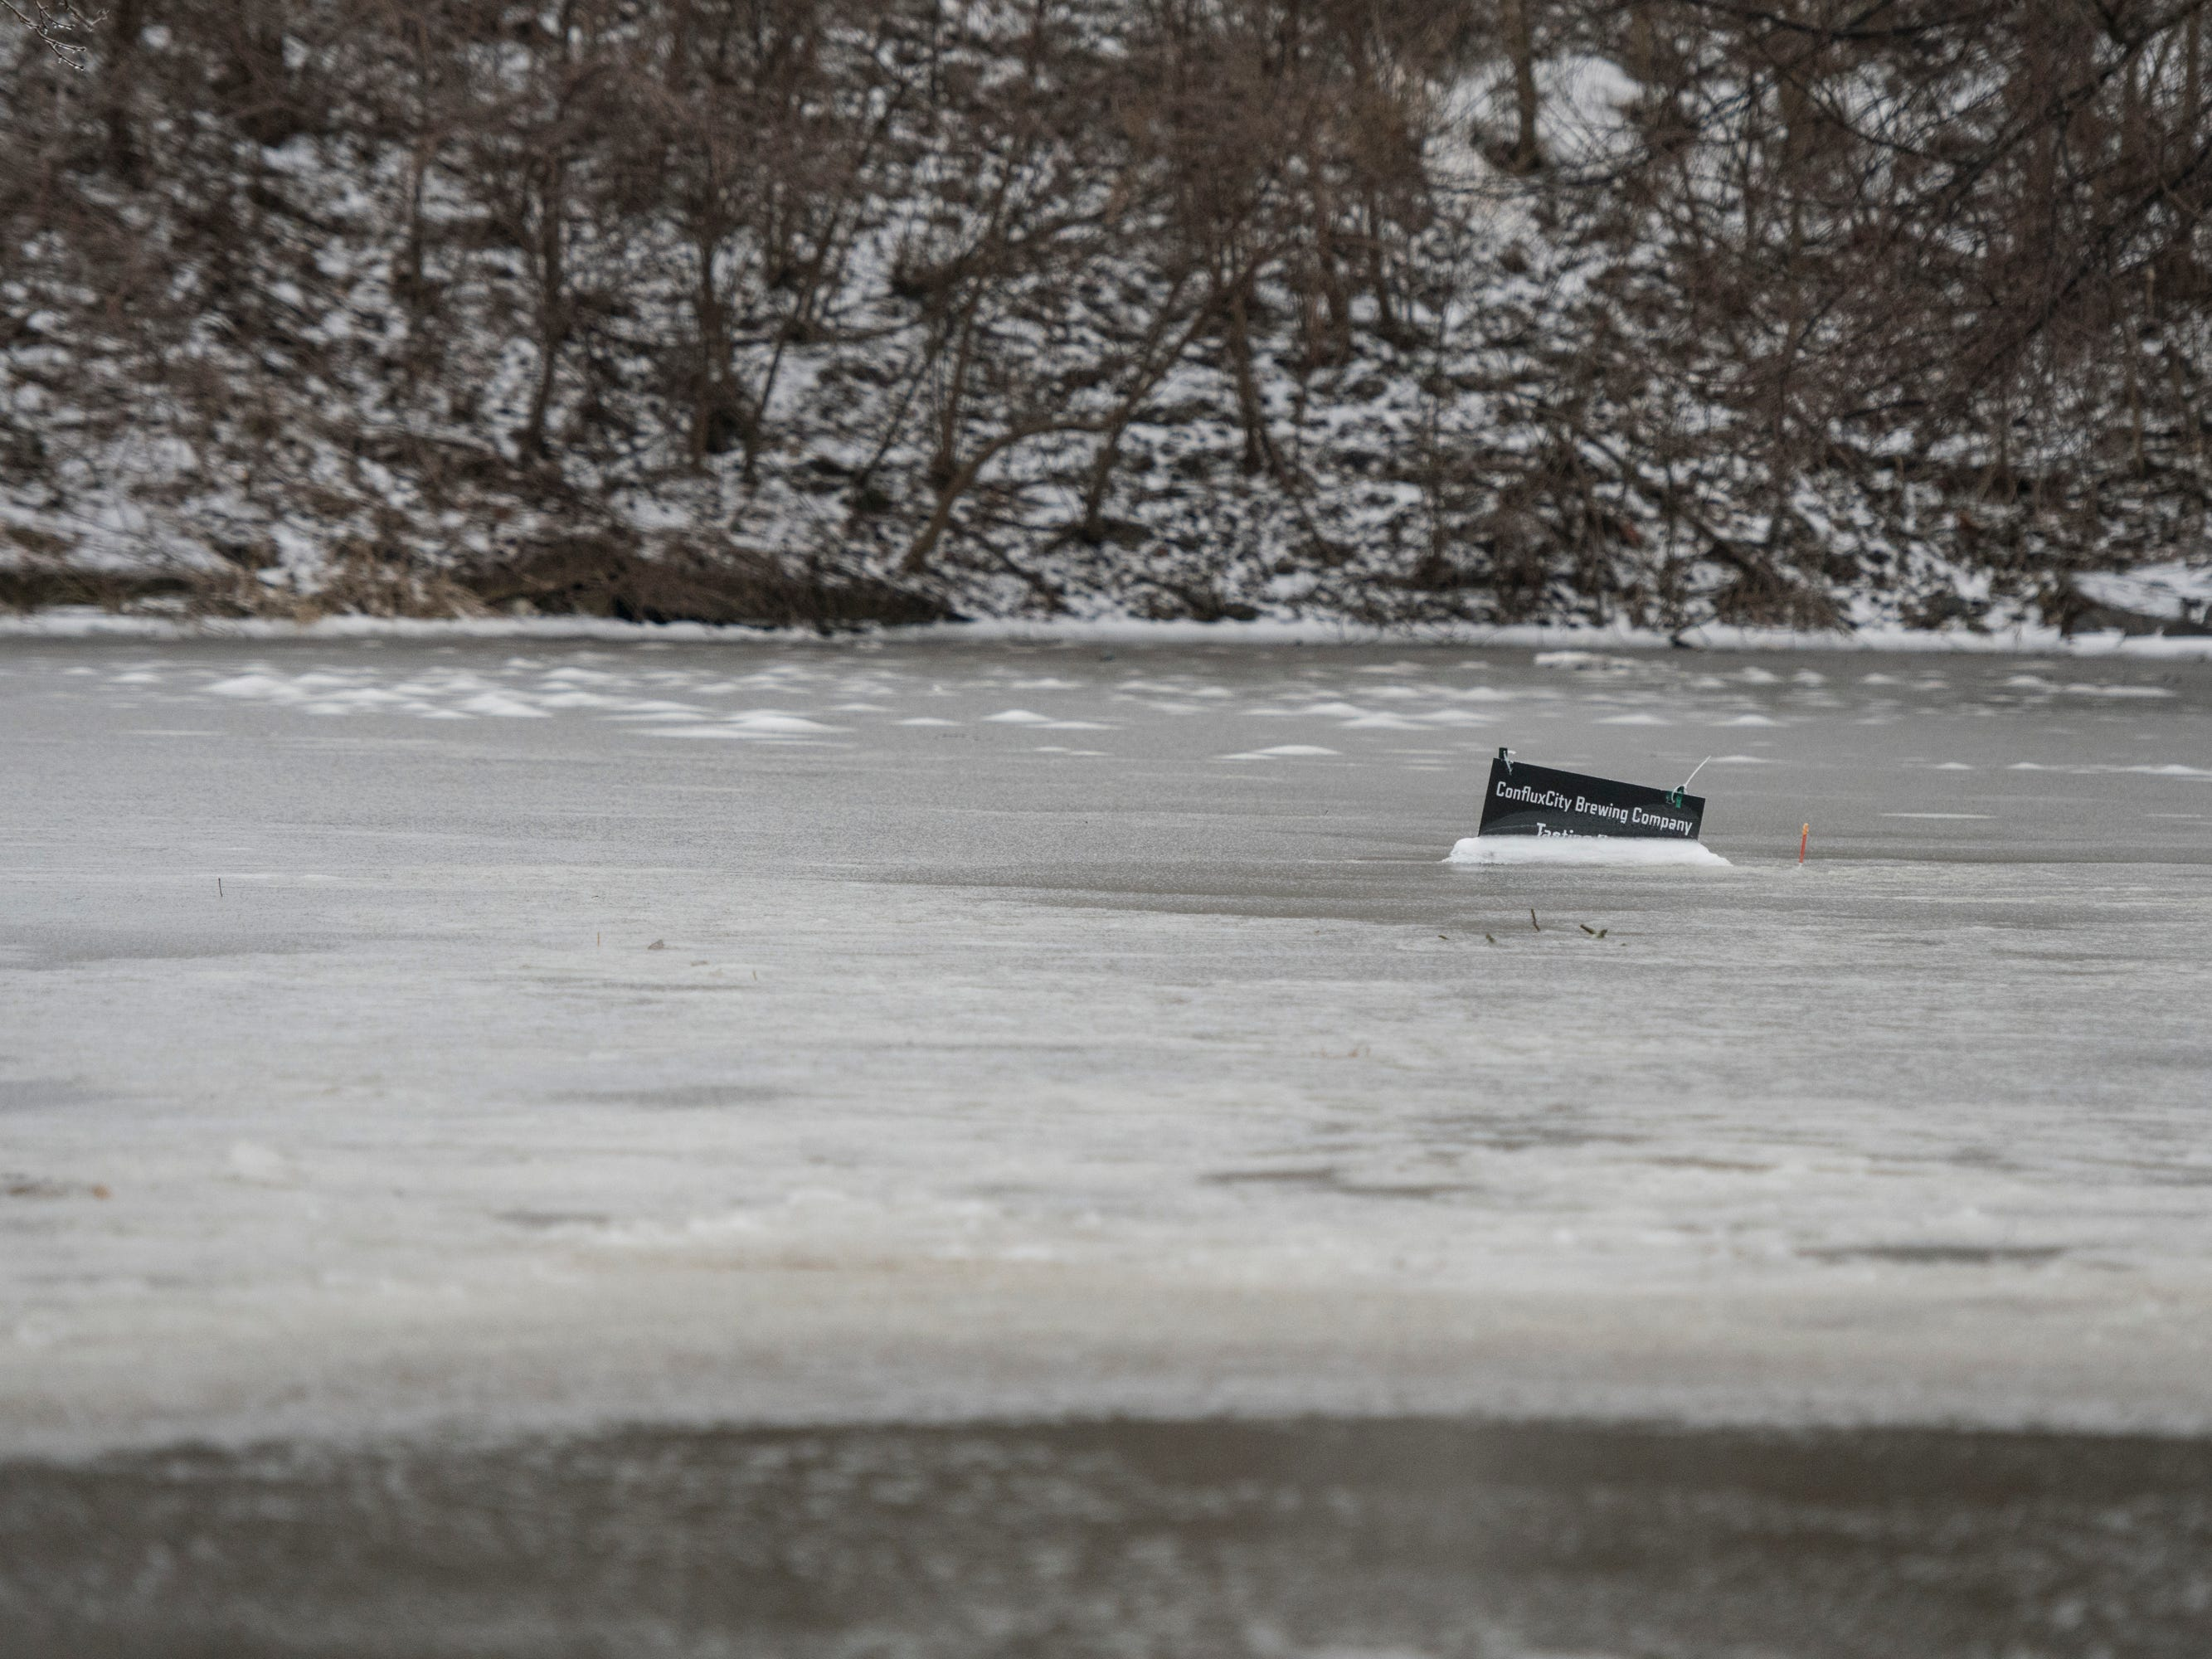 Signage under ice in the parking lot of ConfluxCity Brewing Co. in downtown Portland, Michigan, Wednesday morning, Feb. 6, 2019.  About 50 people were evacuated late Tuesday evening through early Wednesday morning due to flooding along the Grand River caused by melting snow and an ice jam in the river.  [Matthew Dae Smith/Lansing State Journal]